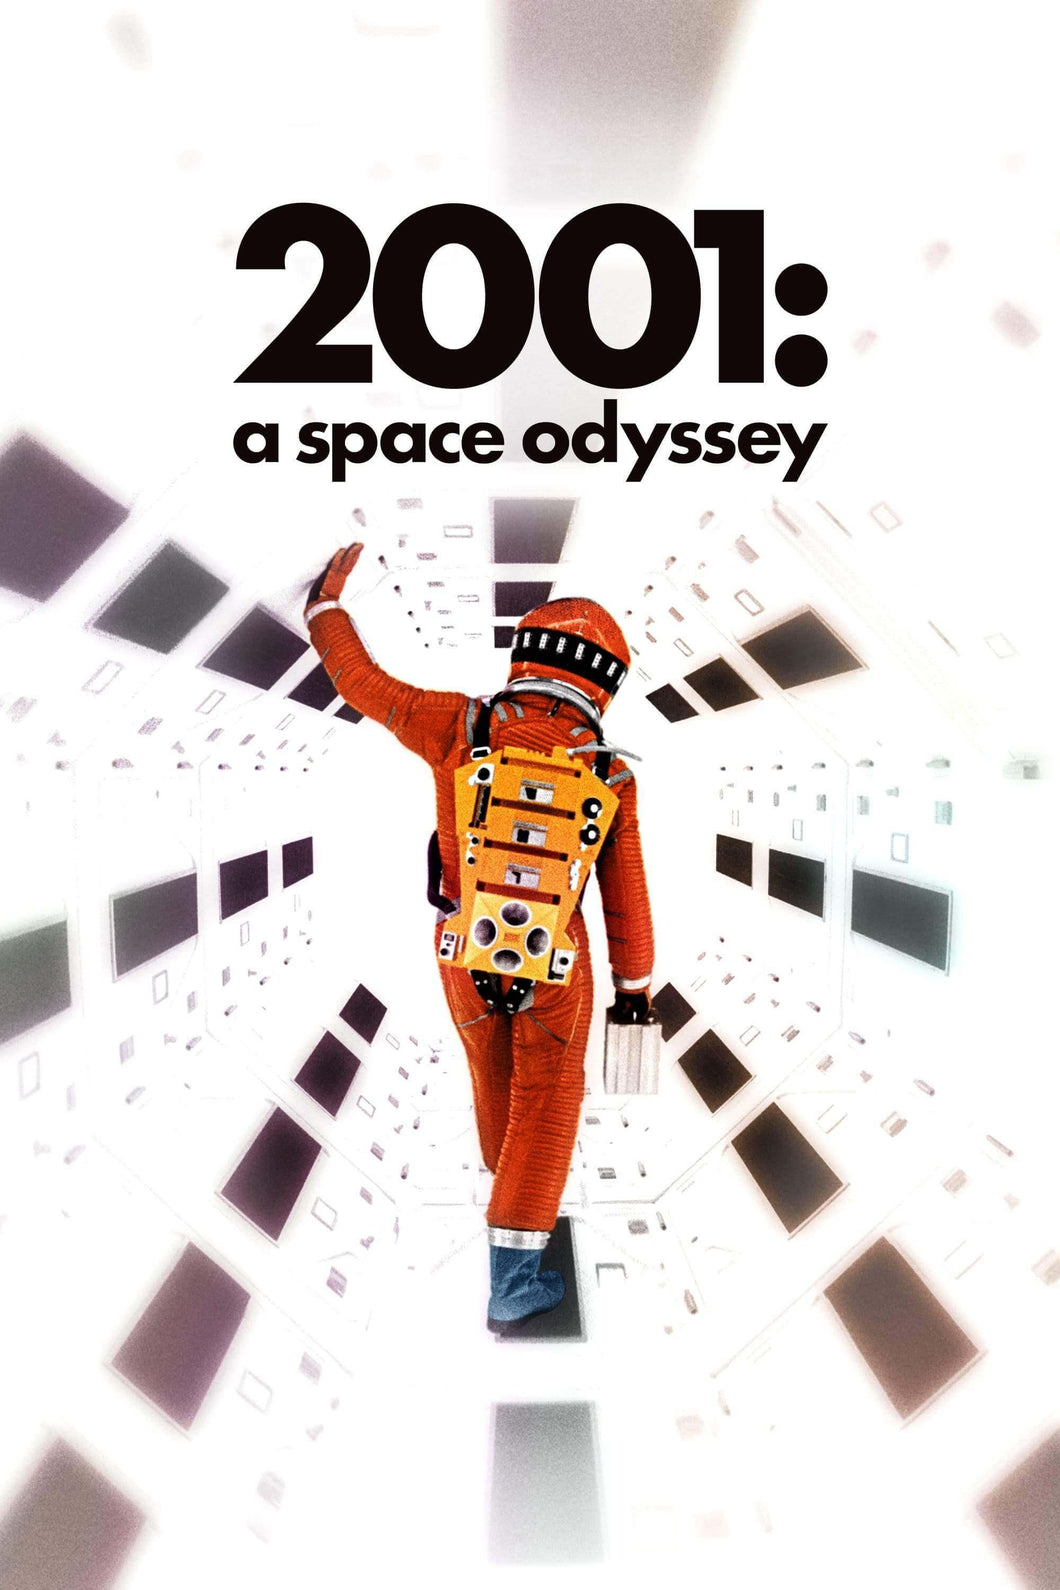 2001: A Space Odyssey | 4K UHD Movies Anywhere Code Ports to Vudu, iTunes, GP - Movie Sometimes